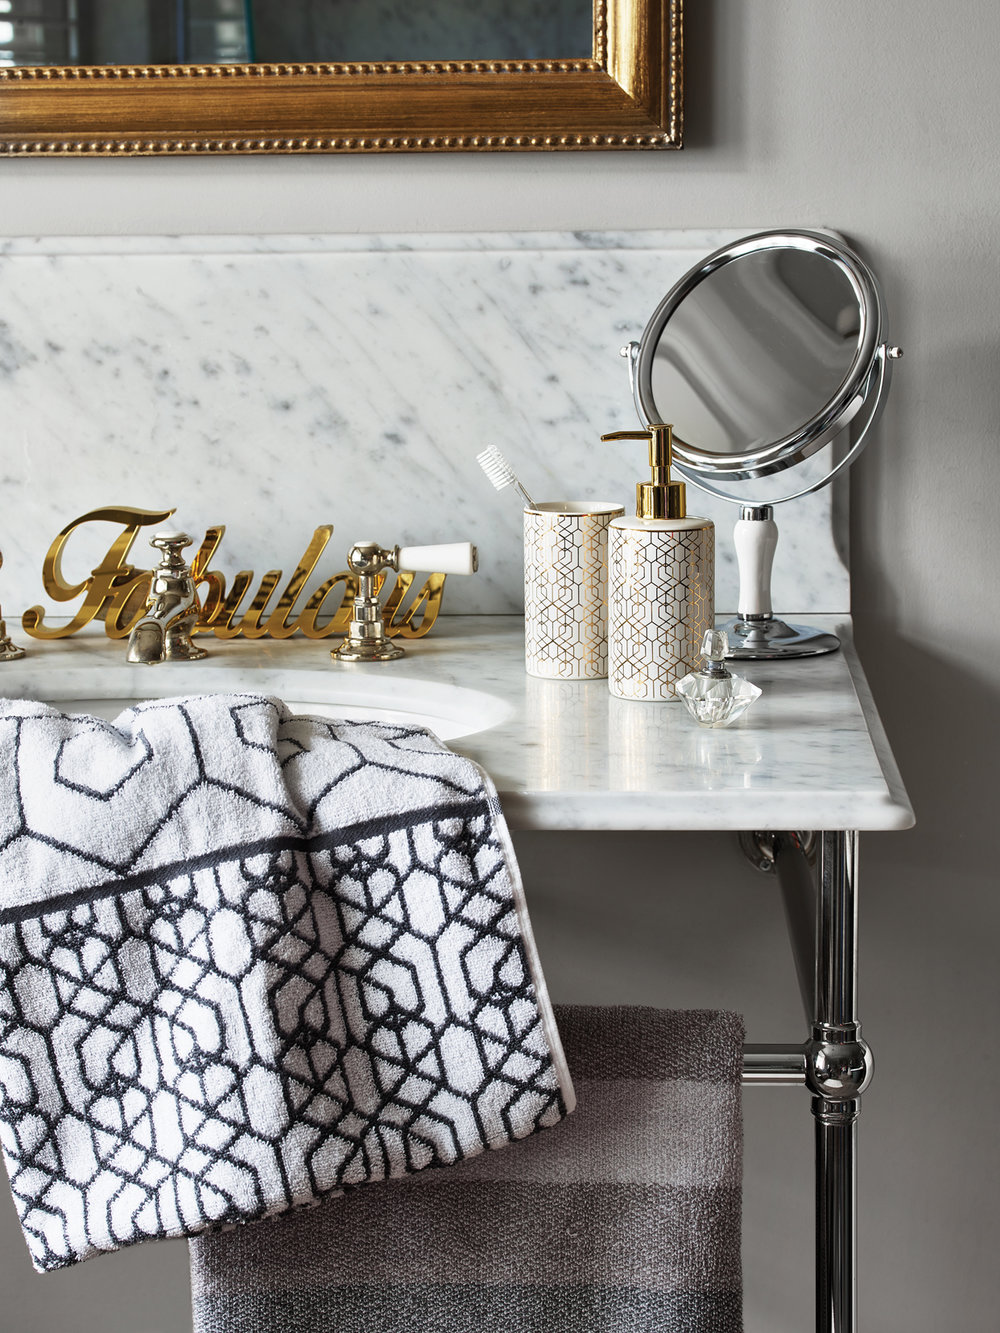 'Fabulous' bath sign - £6, Gold Geo tumbler - £3, Gold Geo dispenser - £5, White and Chrome stand mirror - £8, Grey Geo bath towel - £6, Savoy Stripe bath towel - £6.